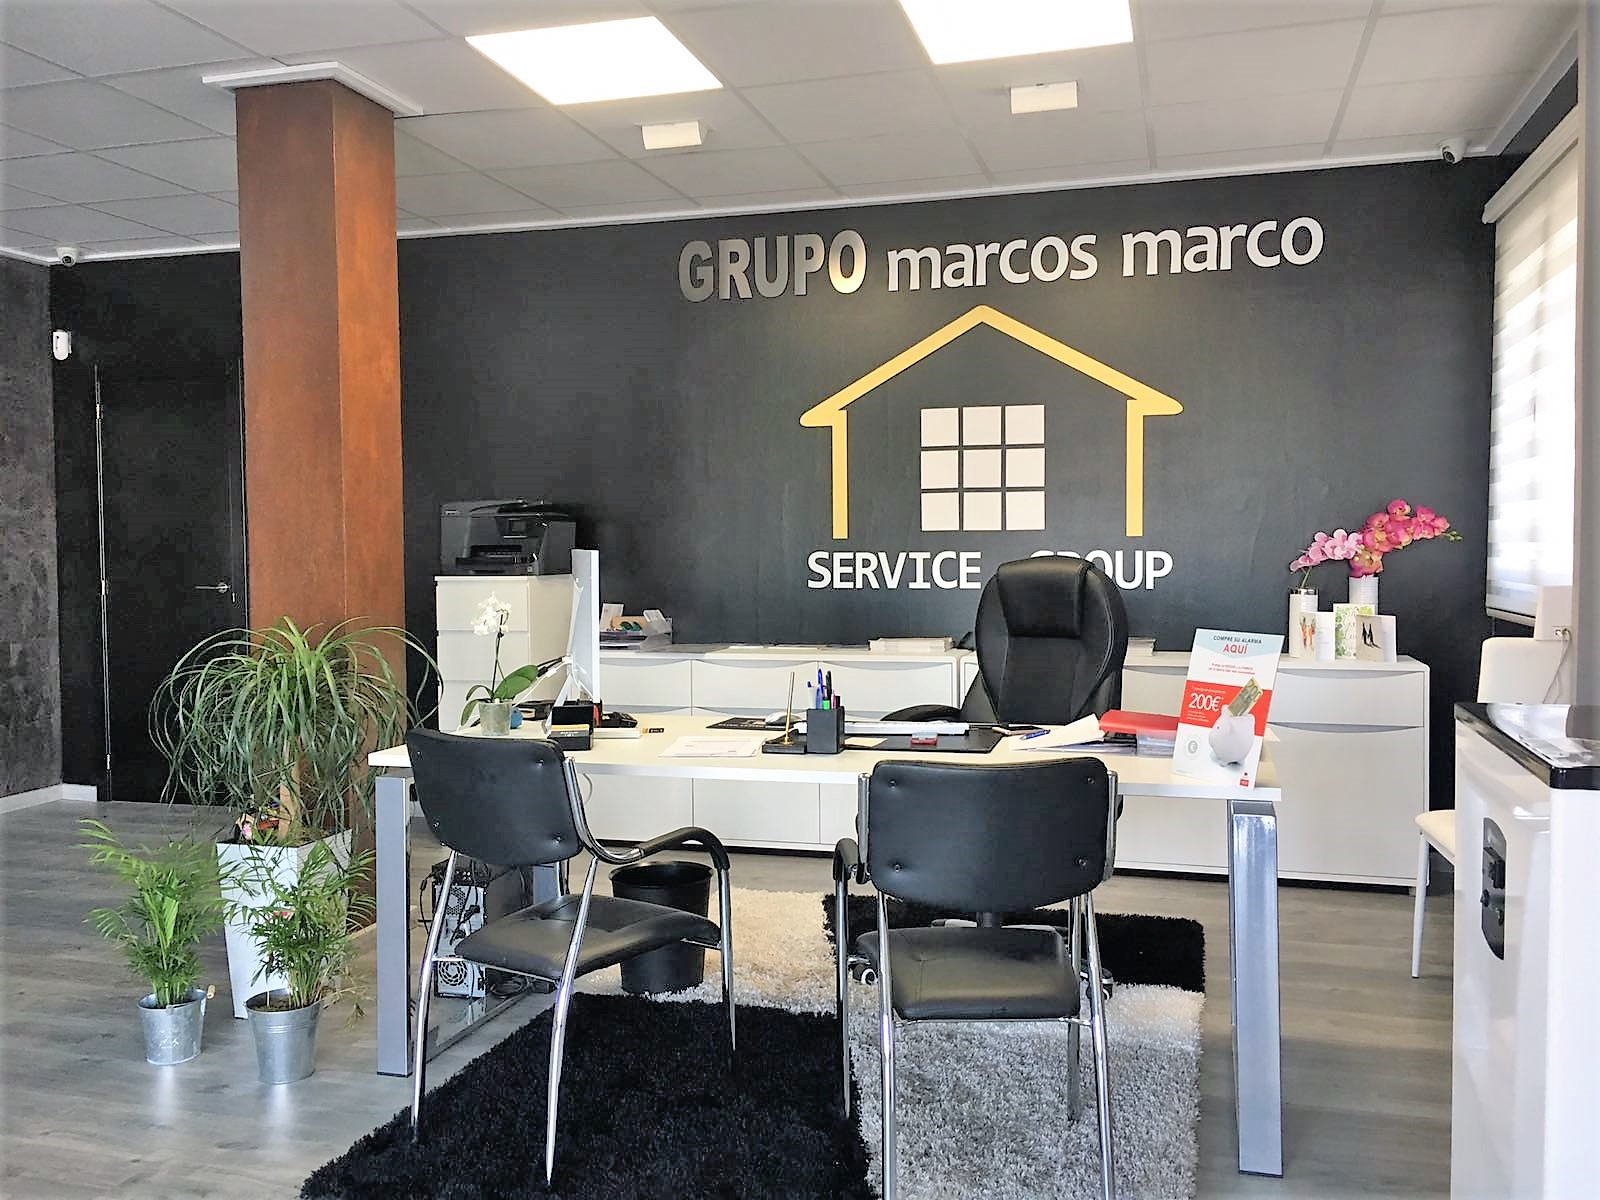 GRUPO MARCOS MARCO in Benidoleig: address, telephone number and ...